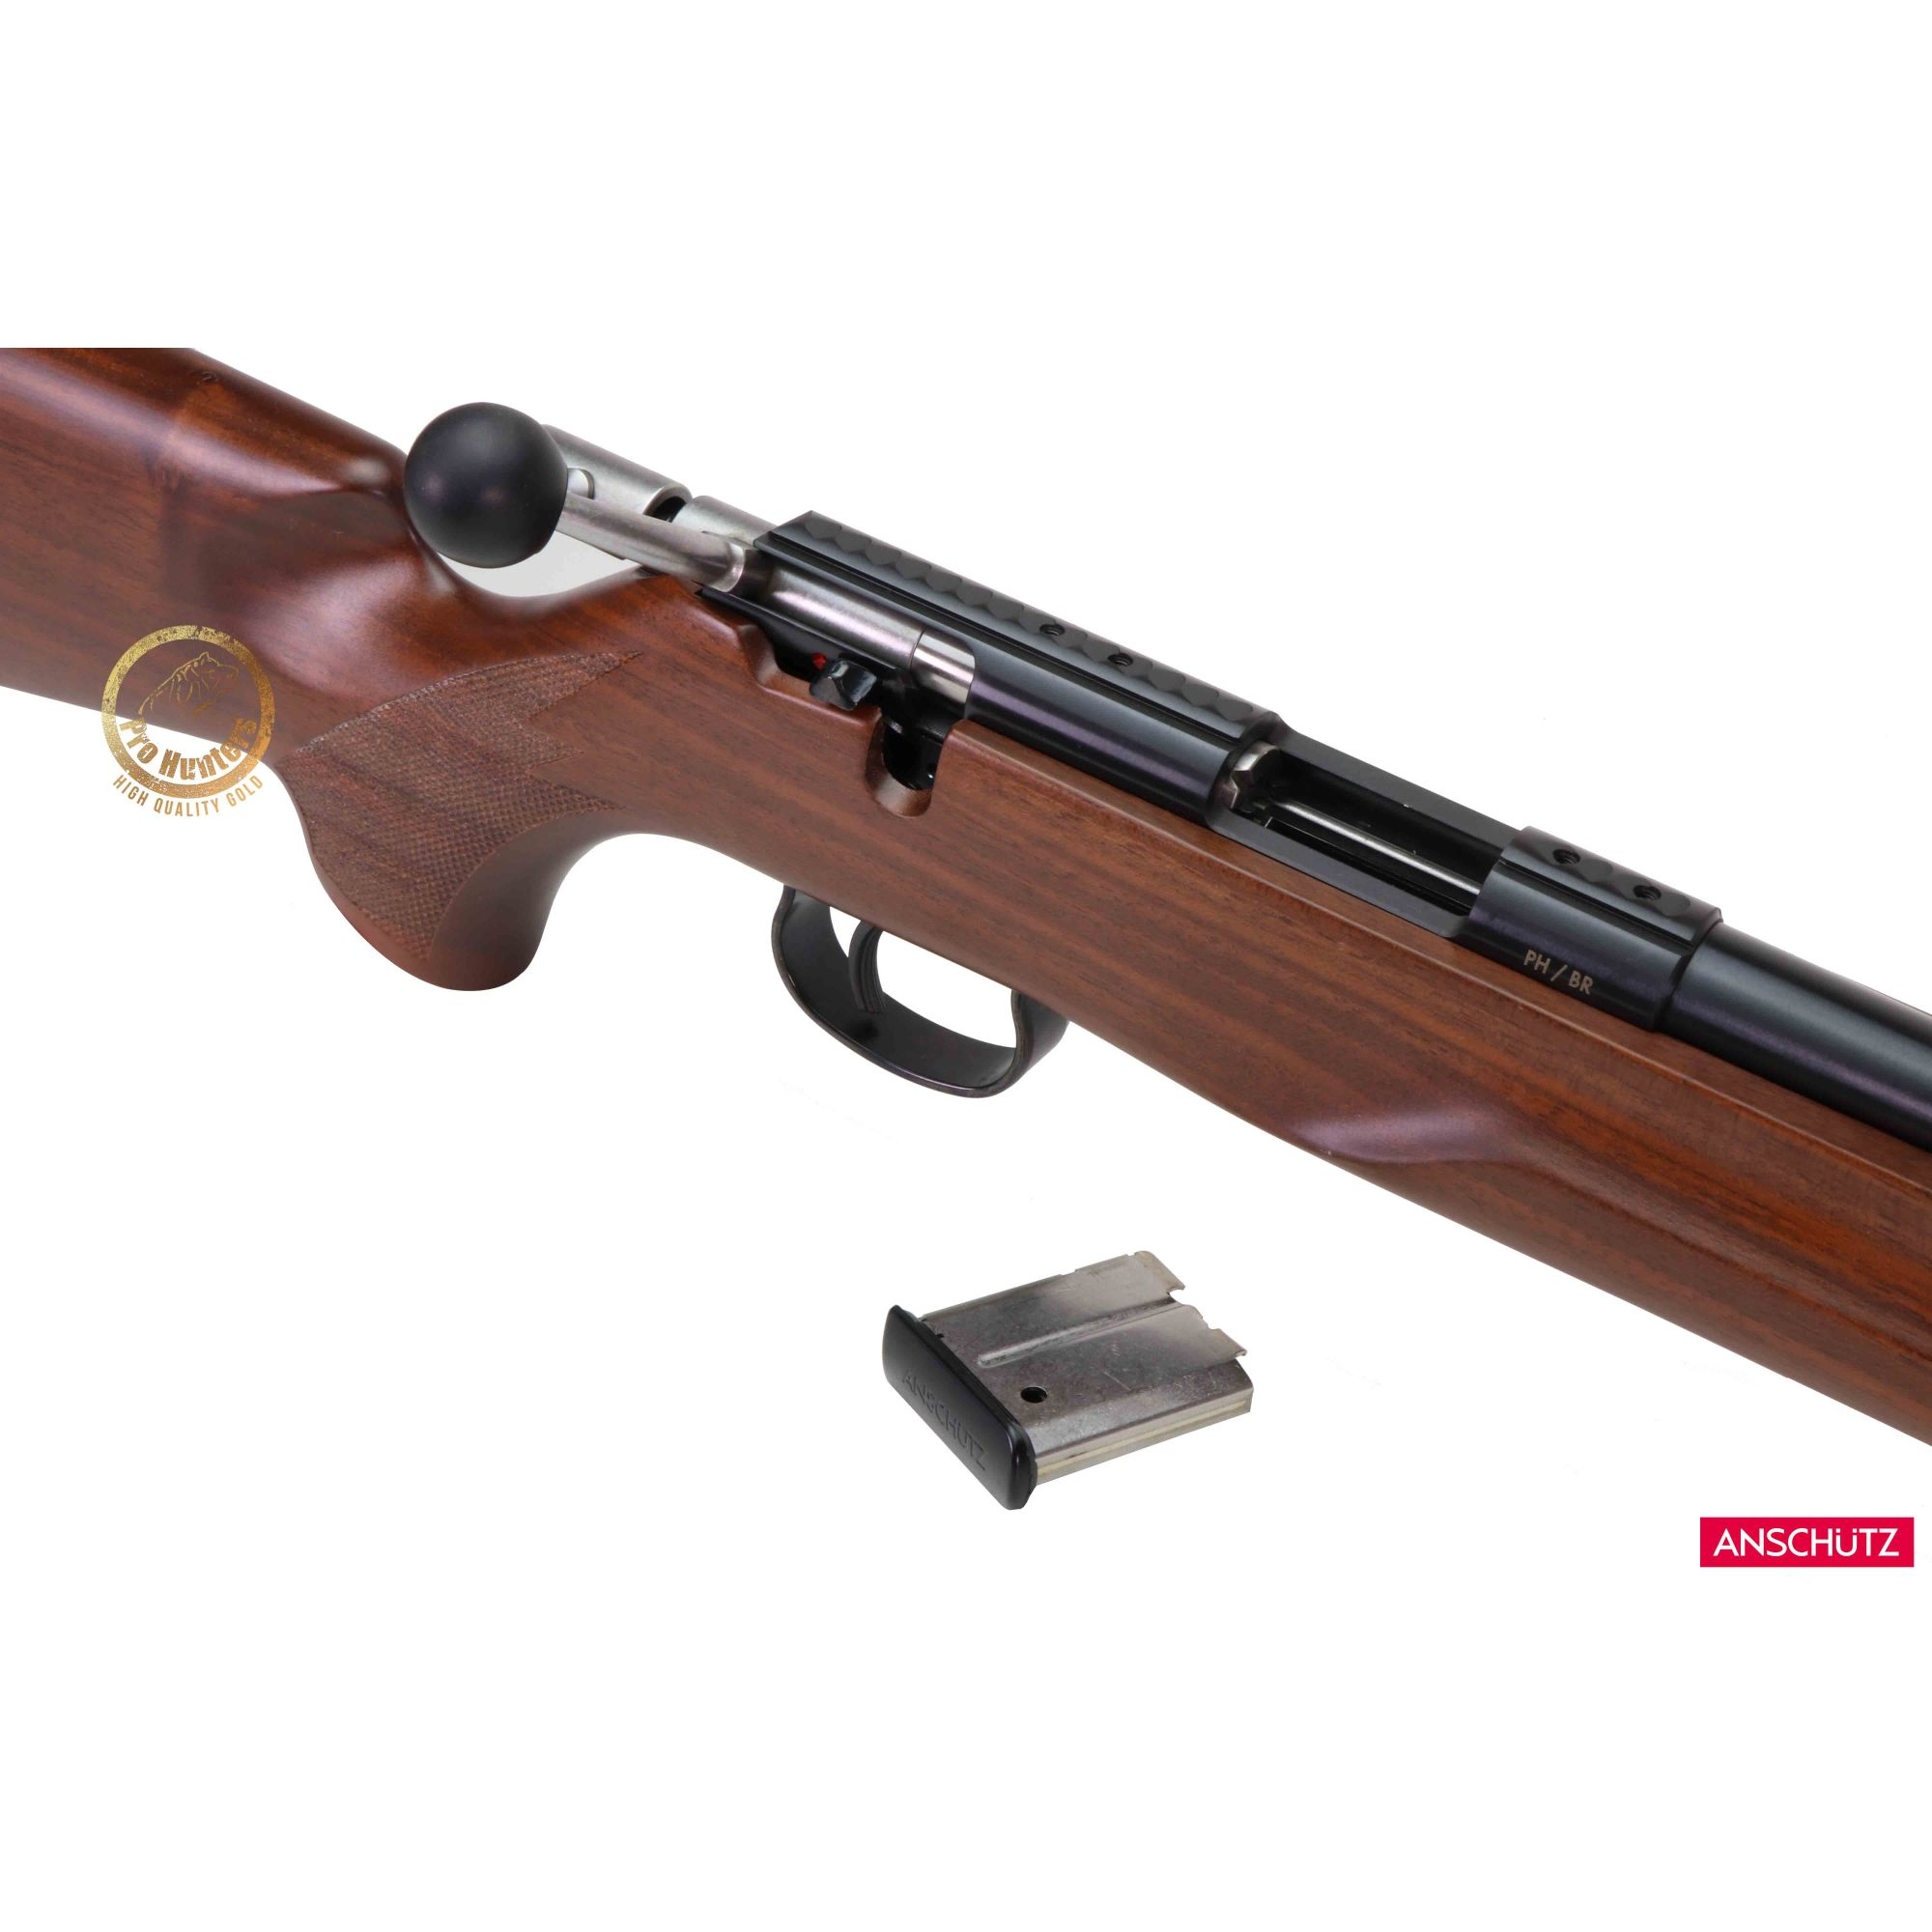 Rifle Anschutz 1517 D HB Beavertail - Calibre .17 HMR